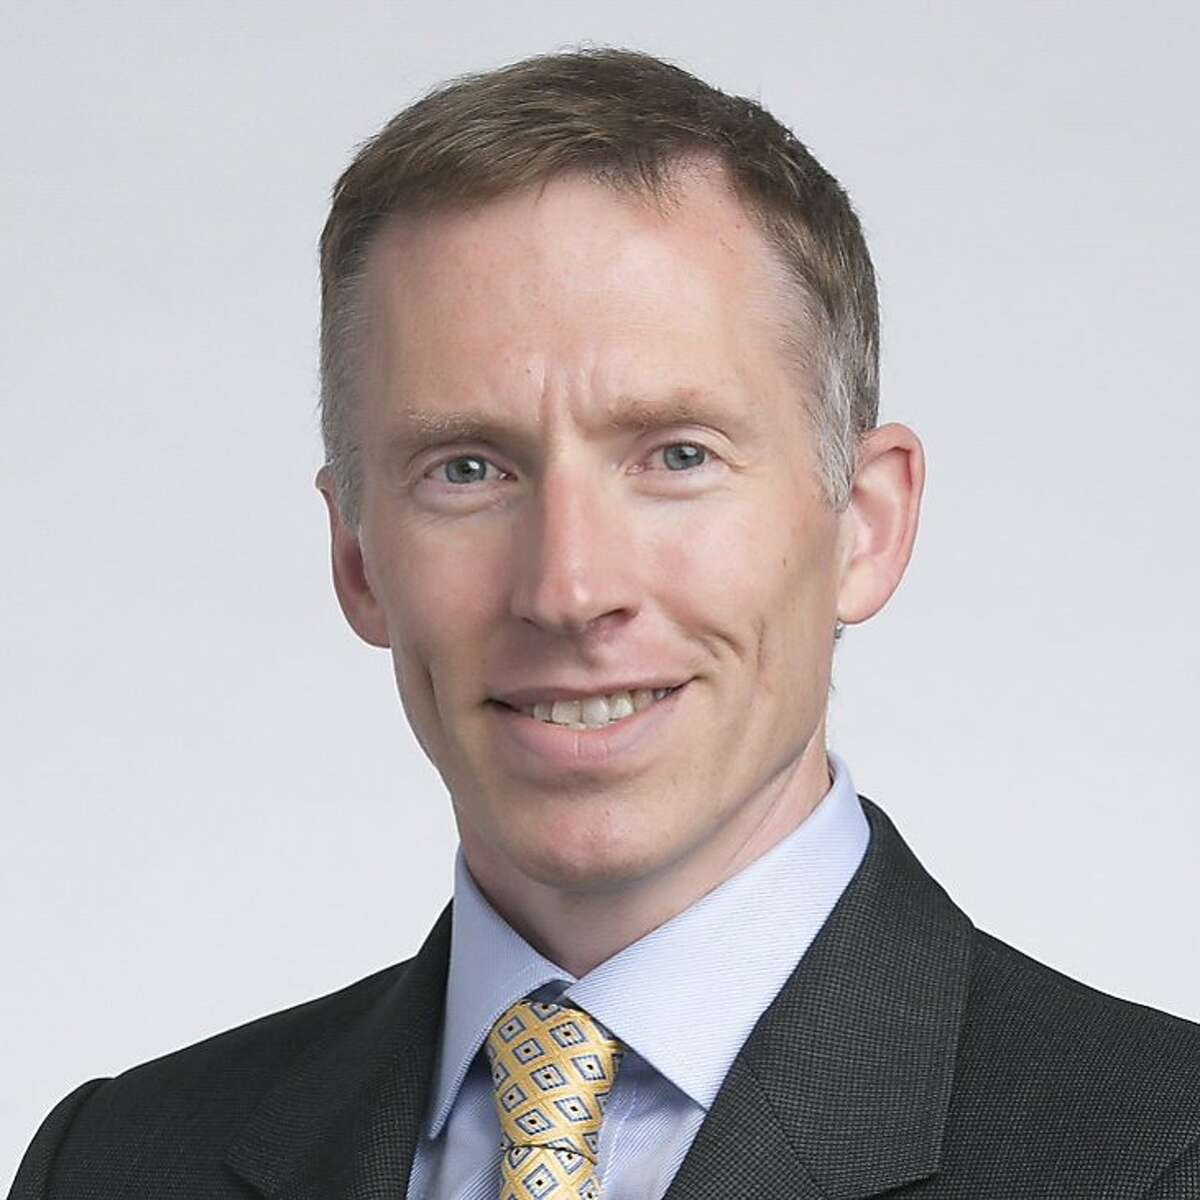 Lattice Strategies hired William Hoyt as managing director and head of research and portfolio management.